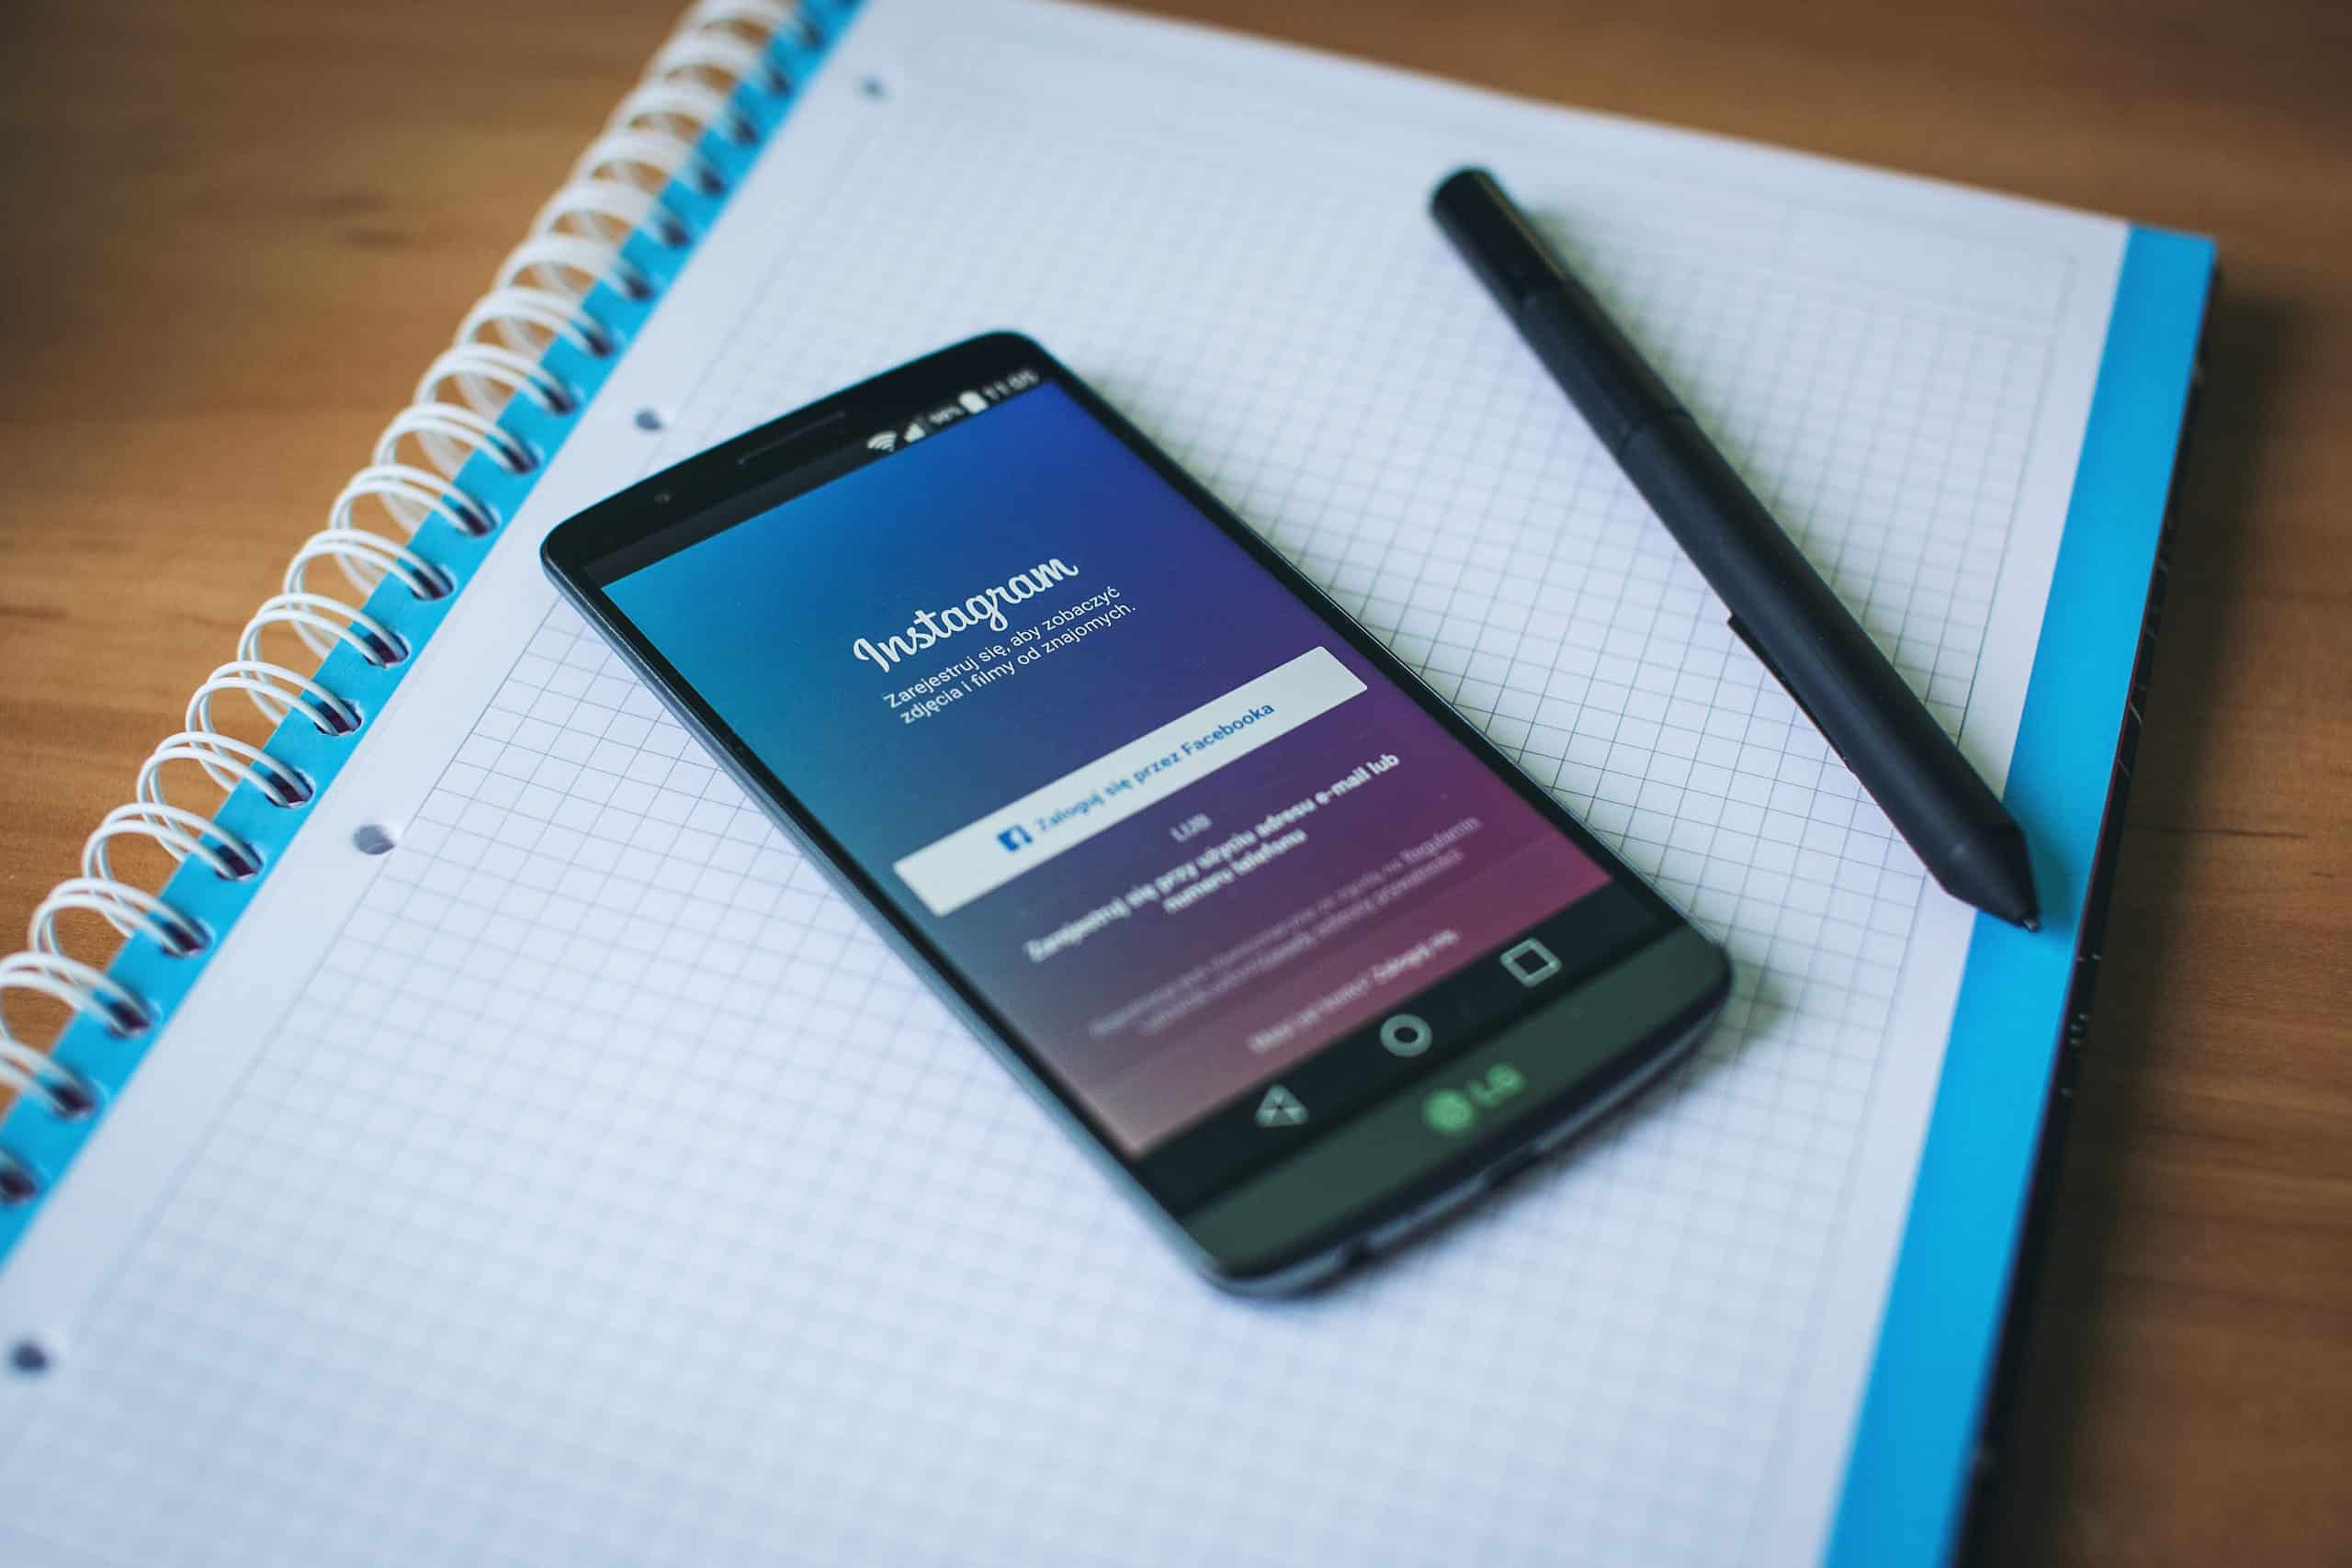 Facebook login page shown on a smartphone that is resting on a notebook and next to a pen